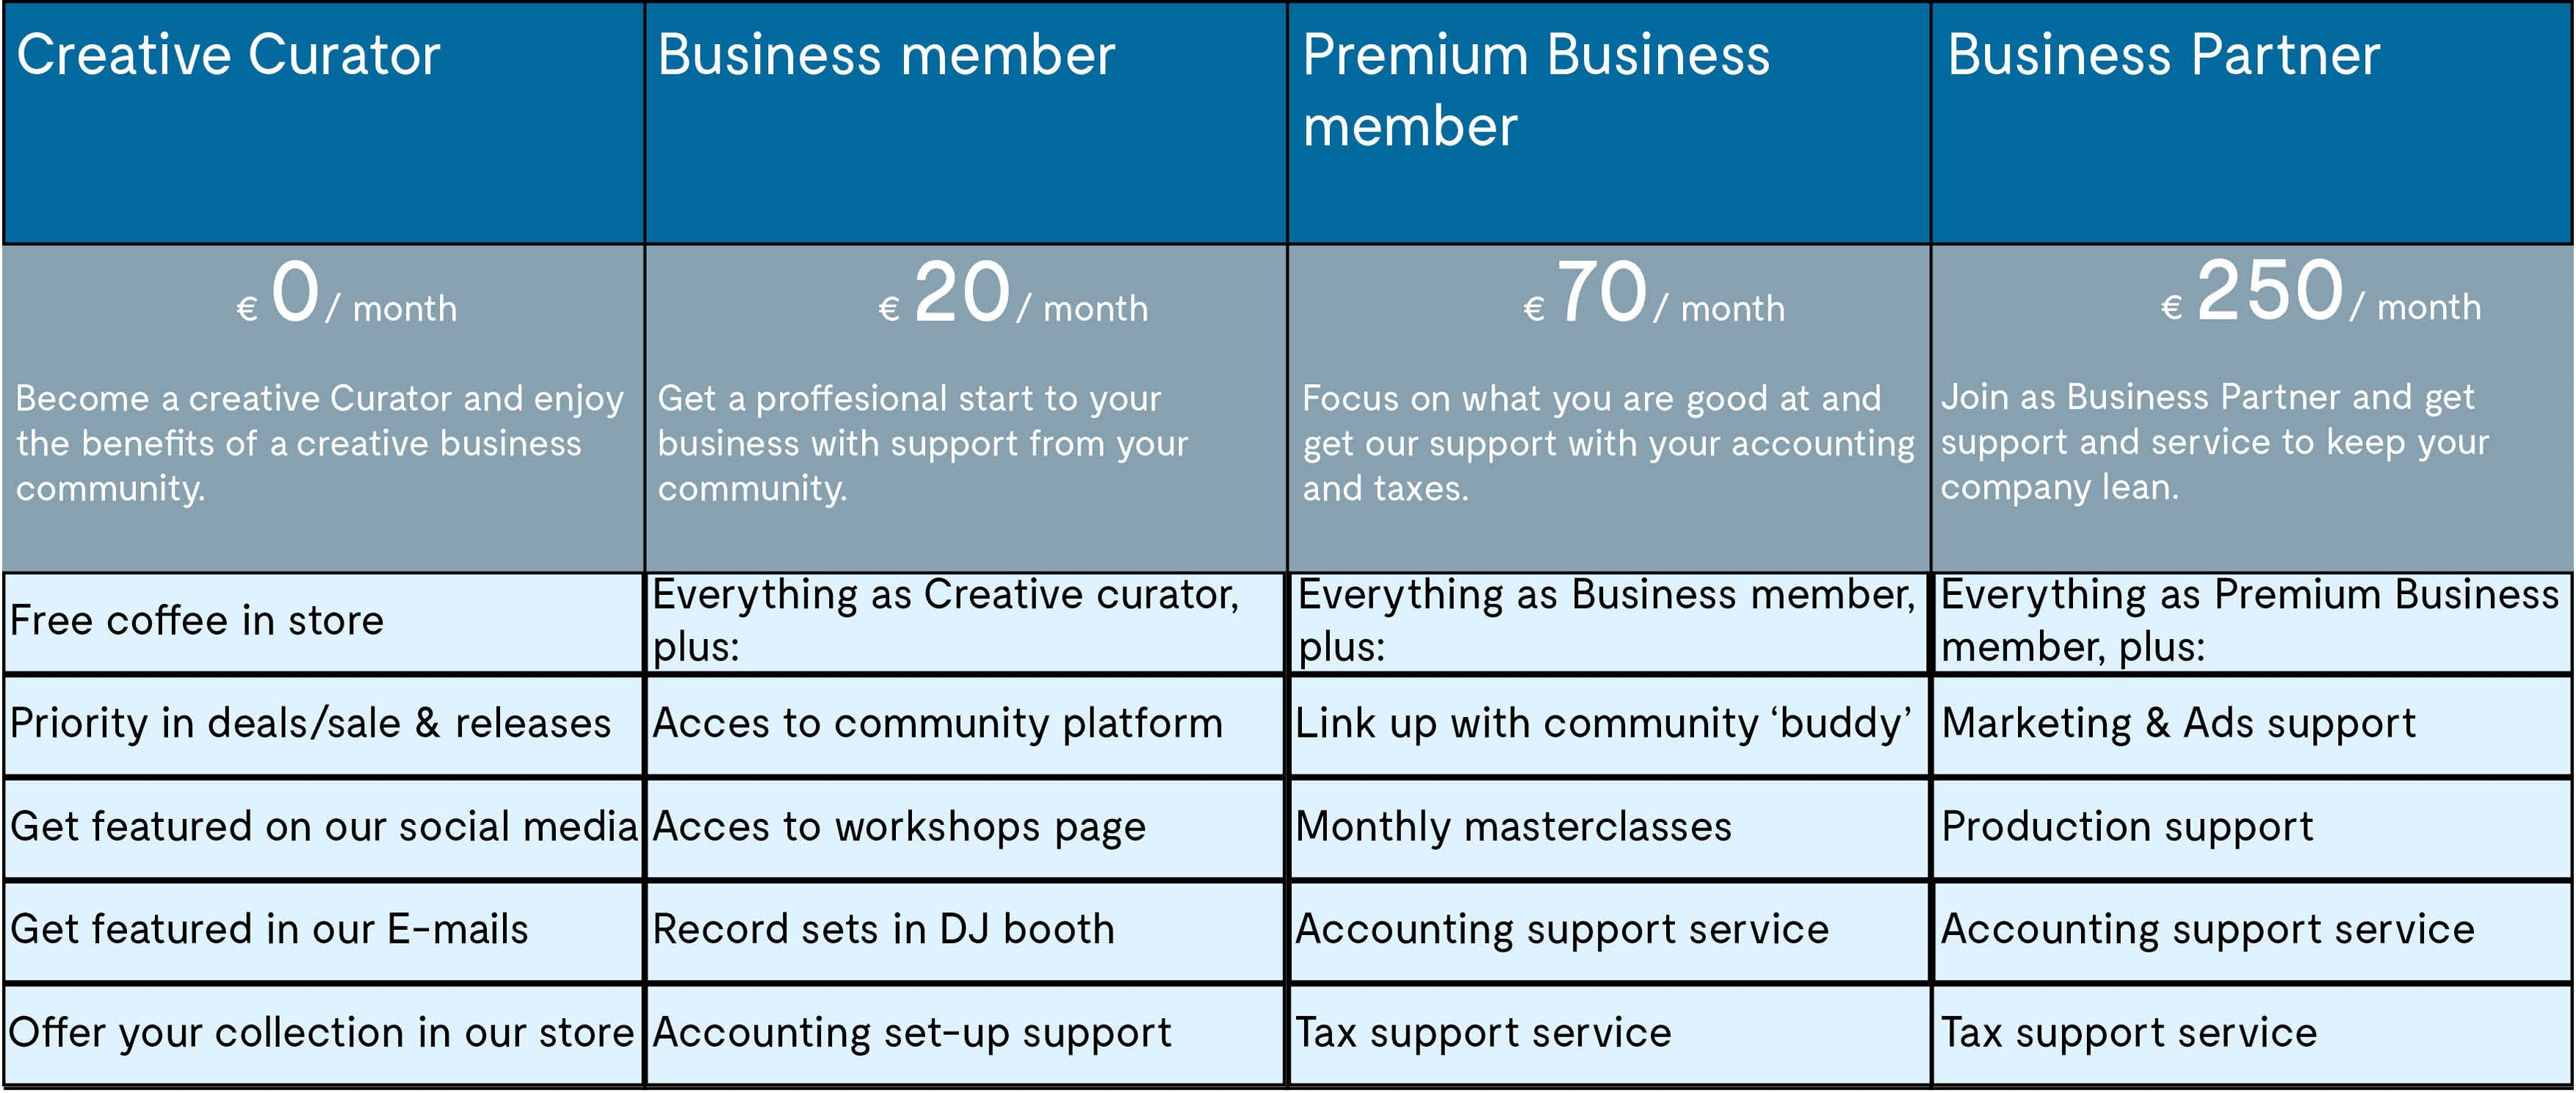 Member overview